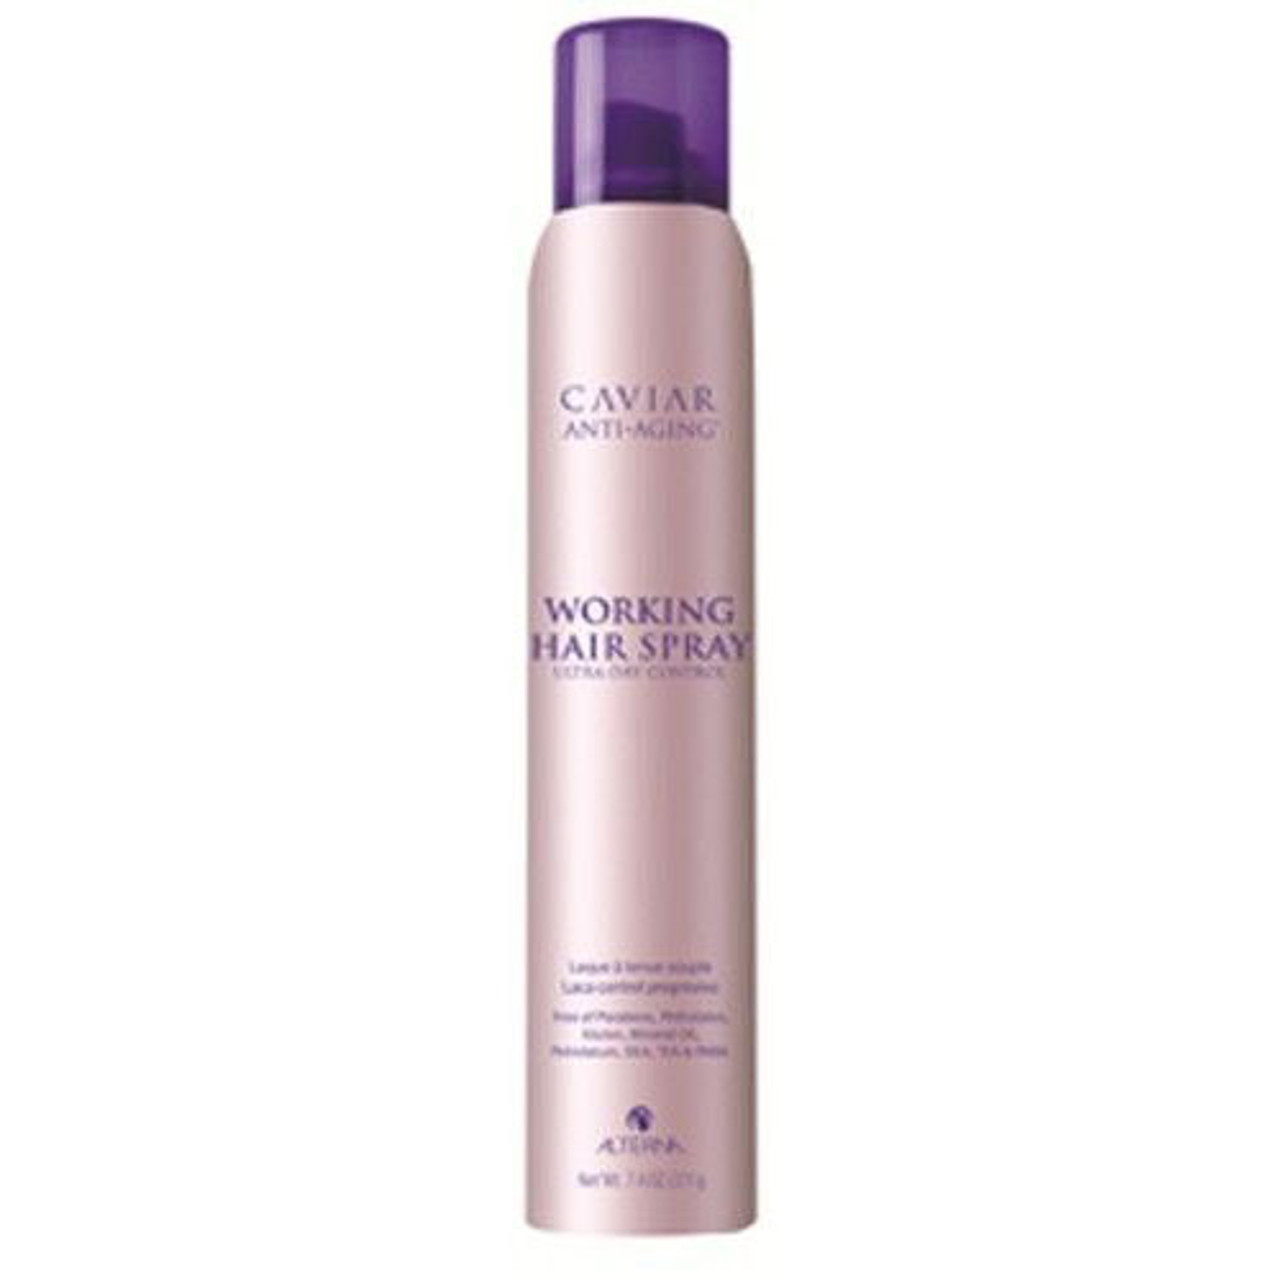 Alterna Caviar Working Hair Spray 7.4 Oz